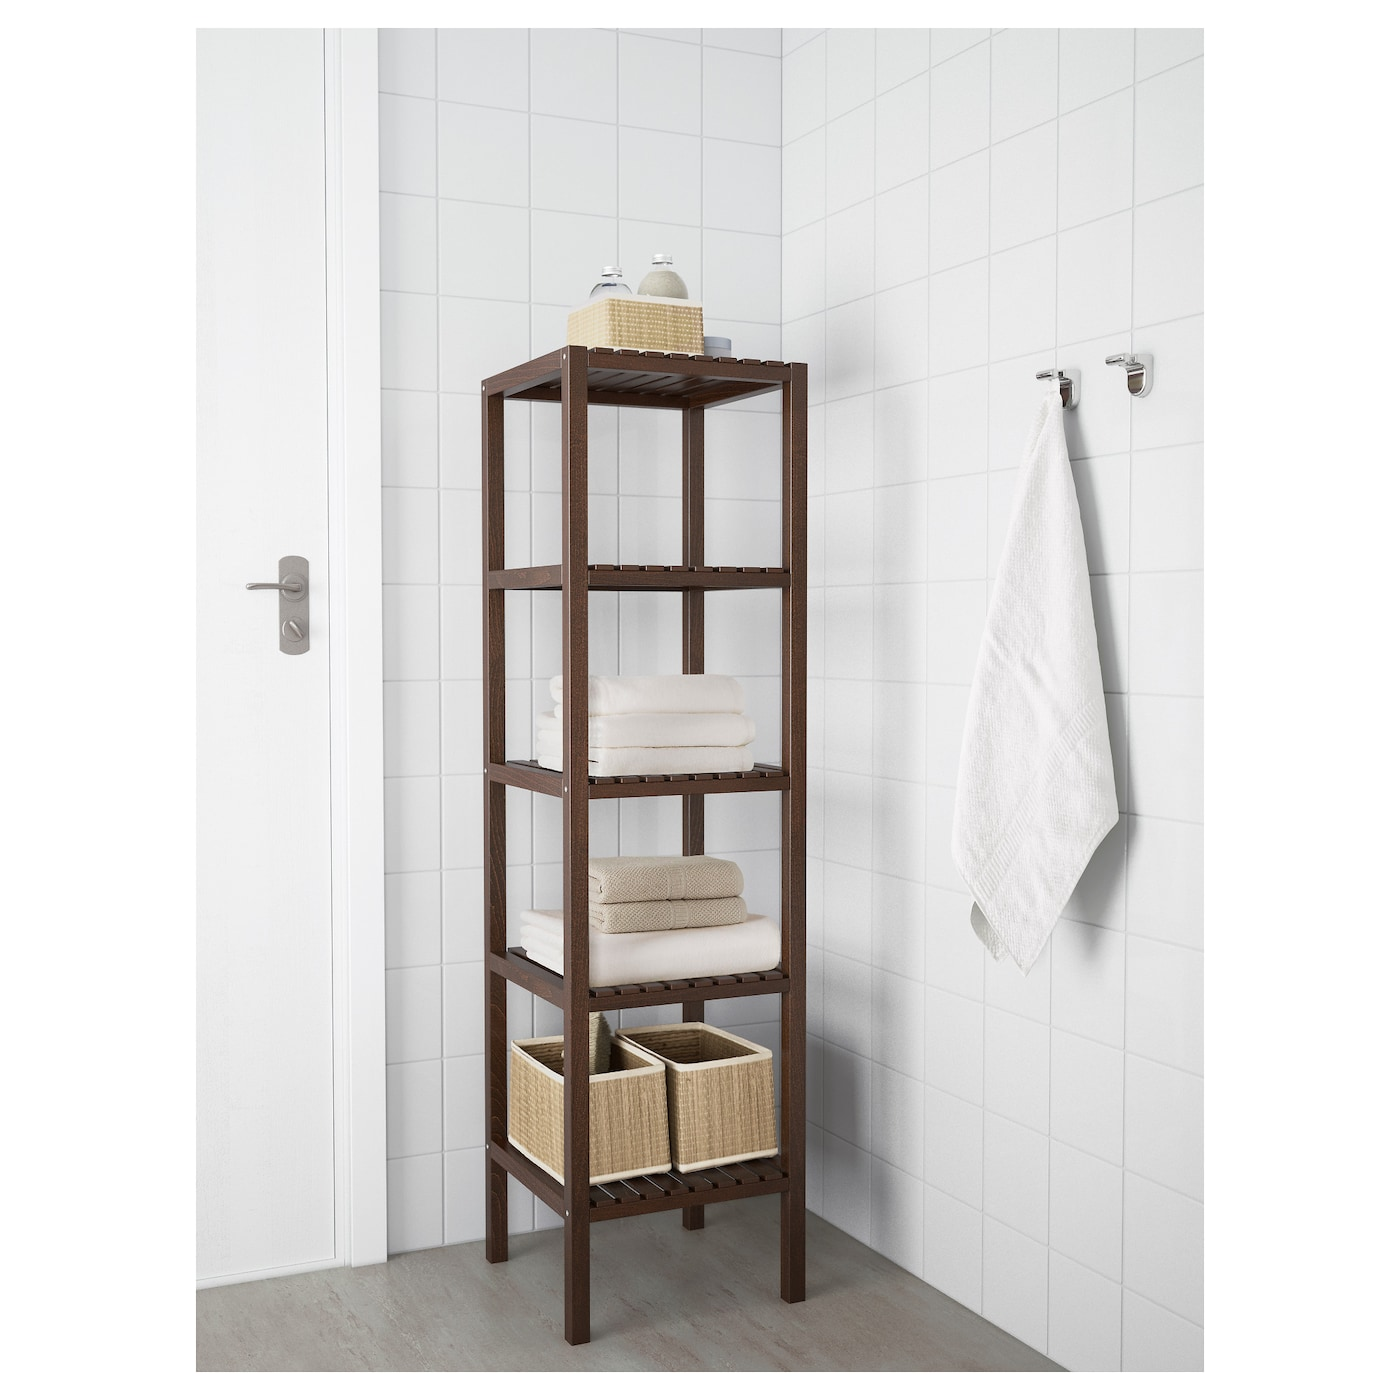 Molger shelving unit dark brown 37x140 cm ikea for Badezimmer regal ikea